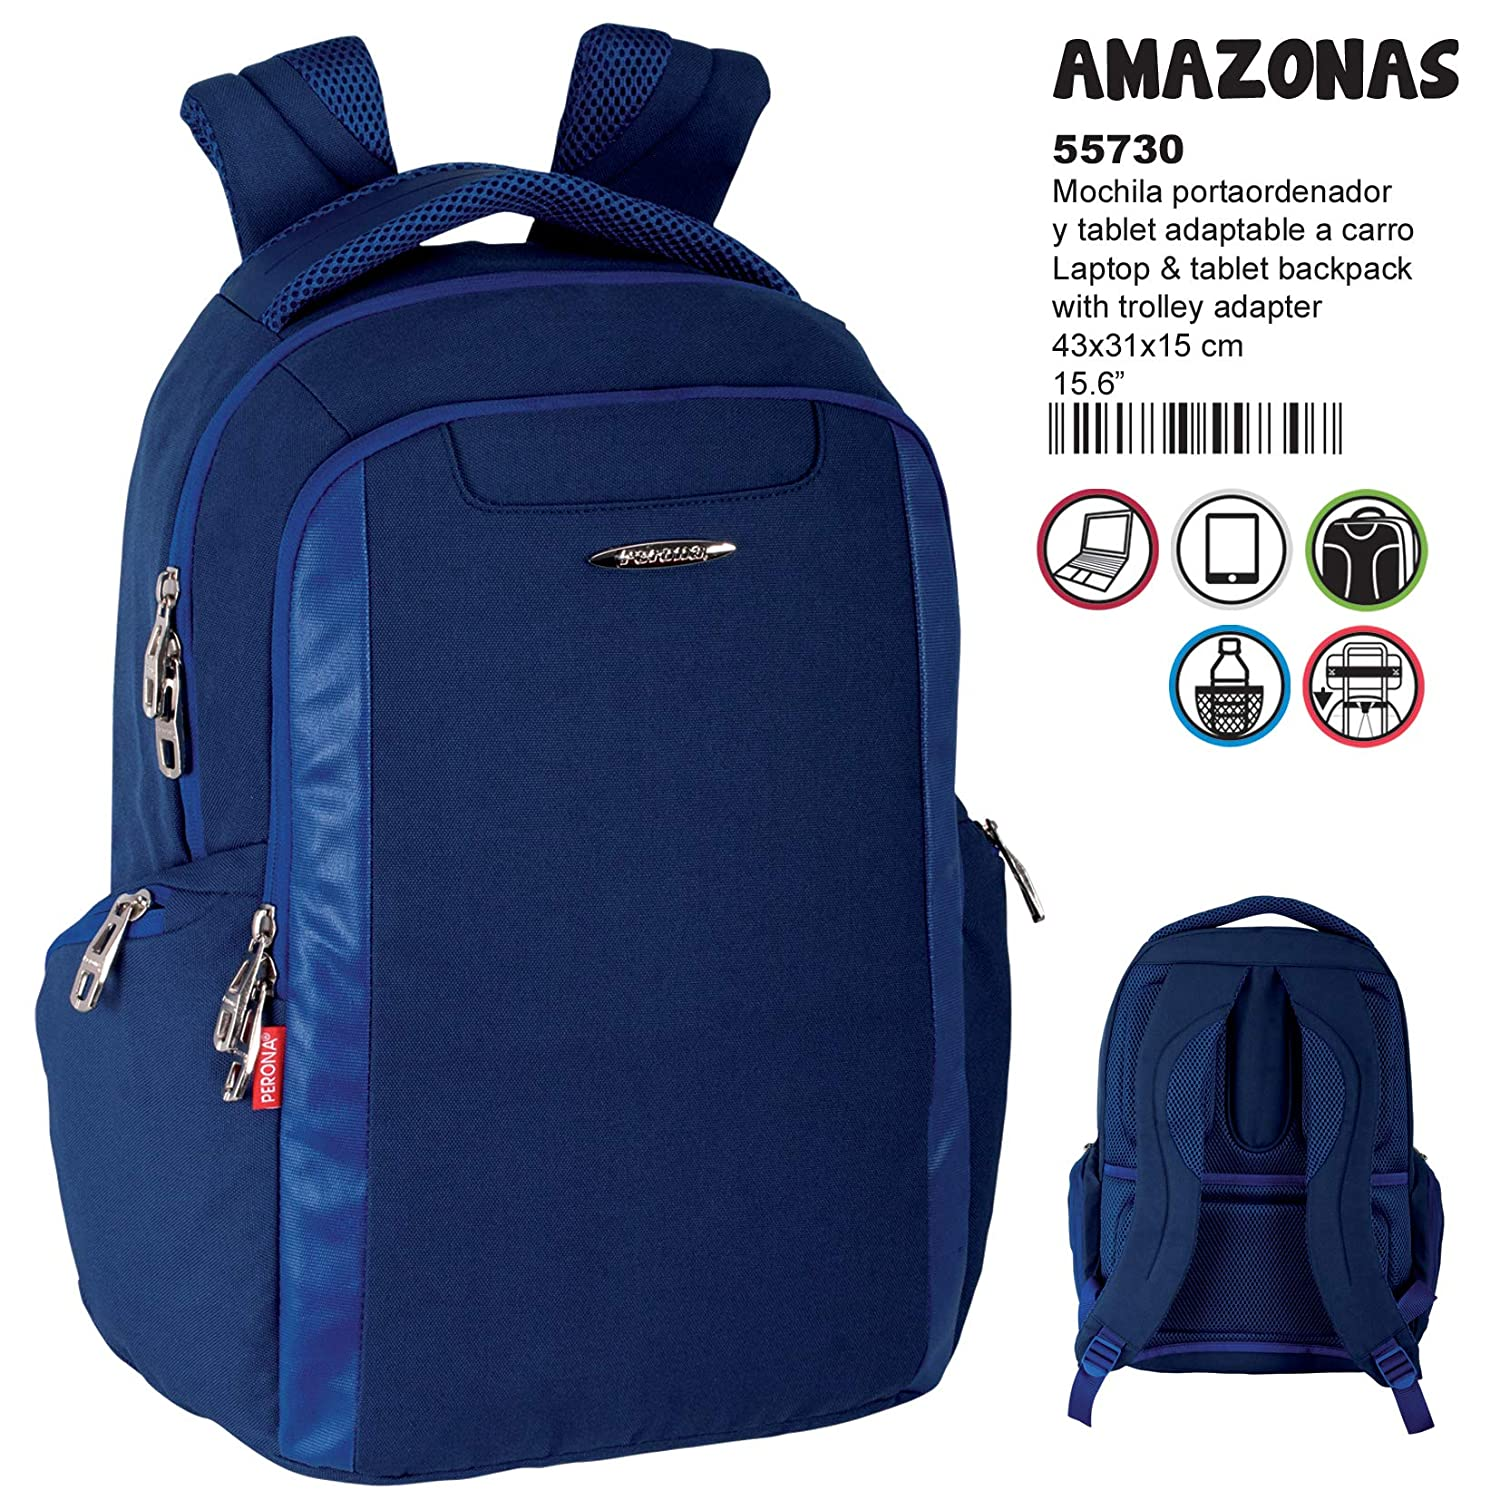 Amazon.com : Perona Amazonas Adaptable Laptop Backpack 43cm : Office Products